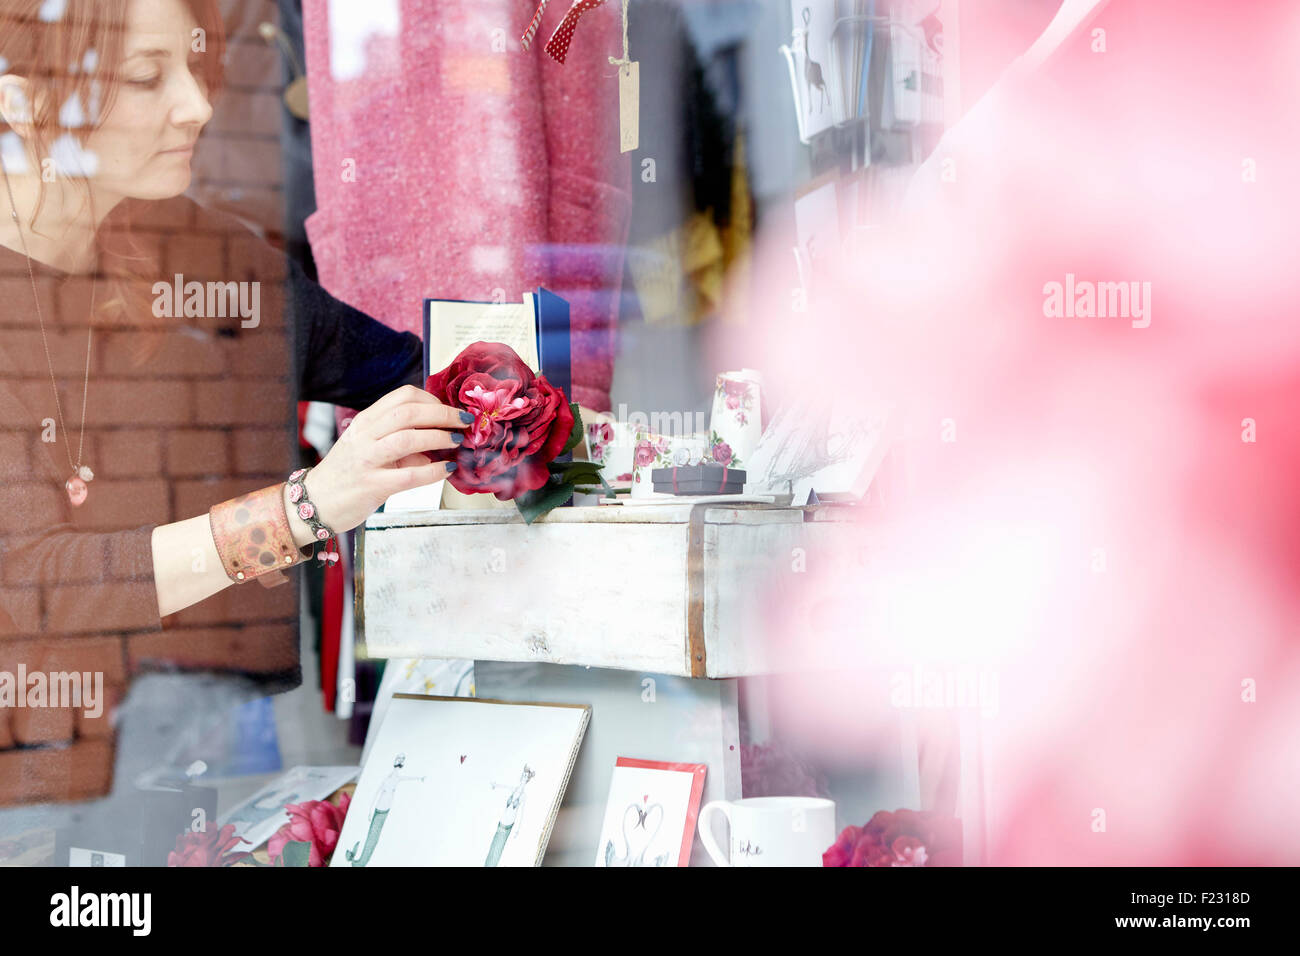 A mature woman rearranging the window display of a gift and craft store. - Stock Image